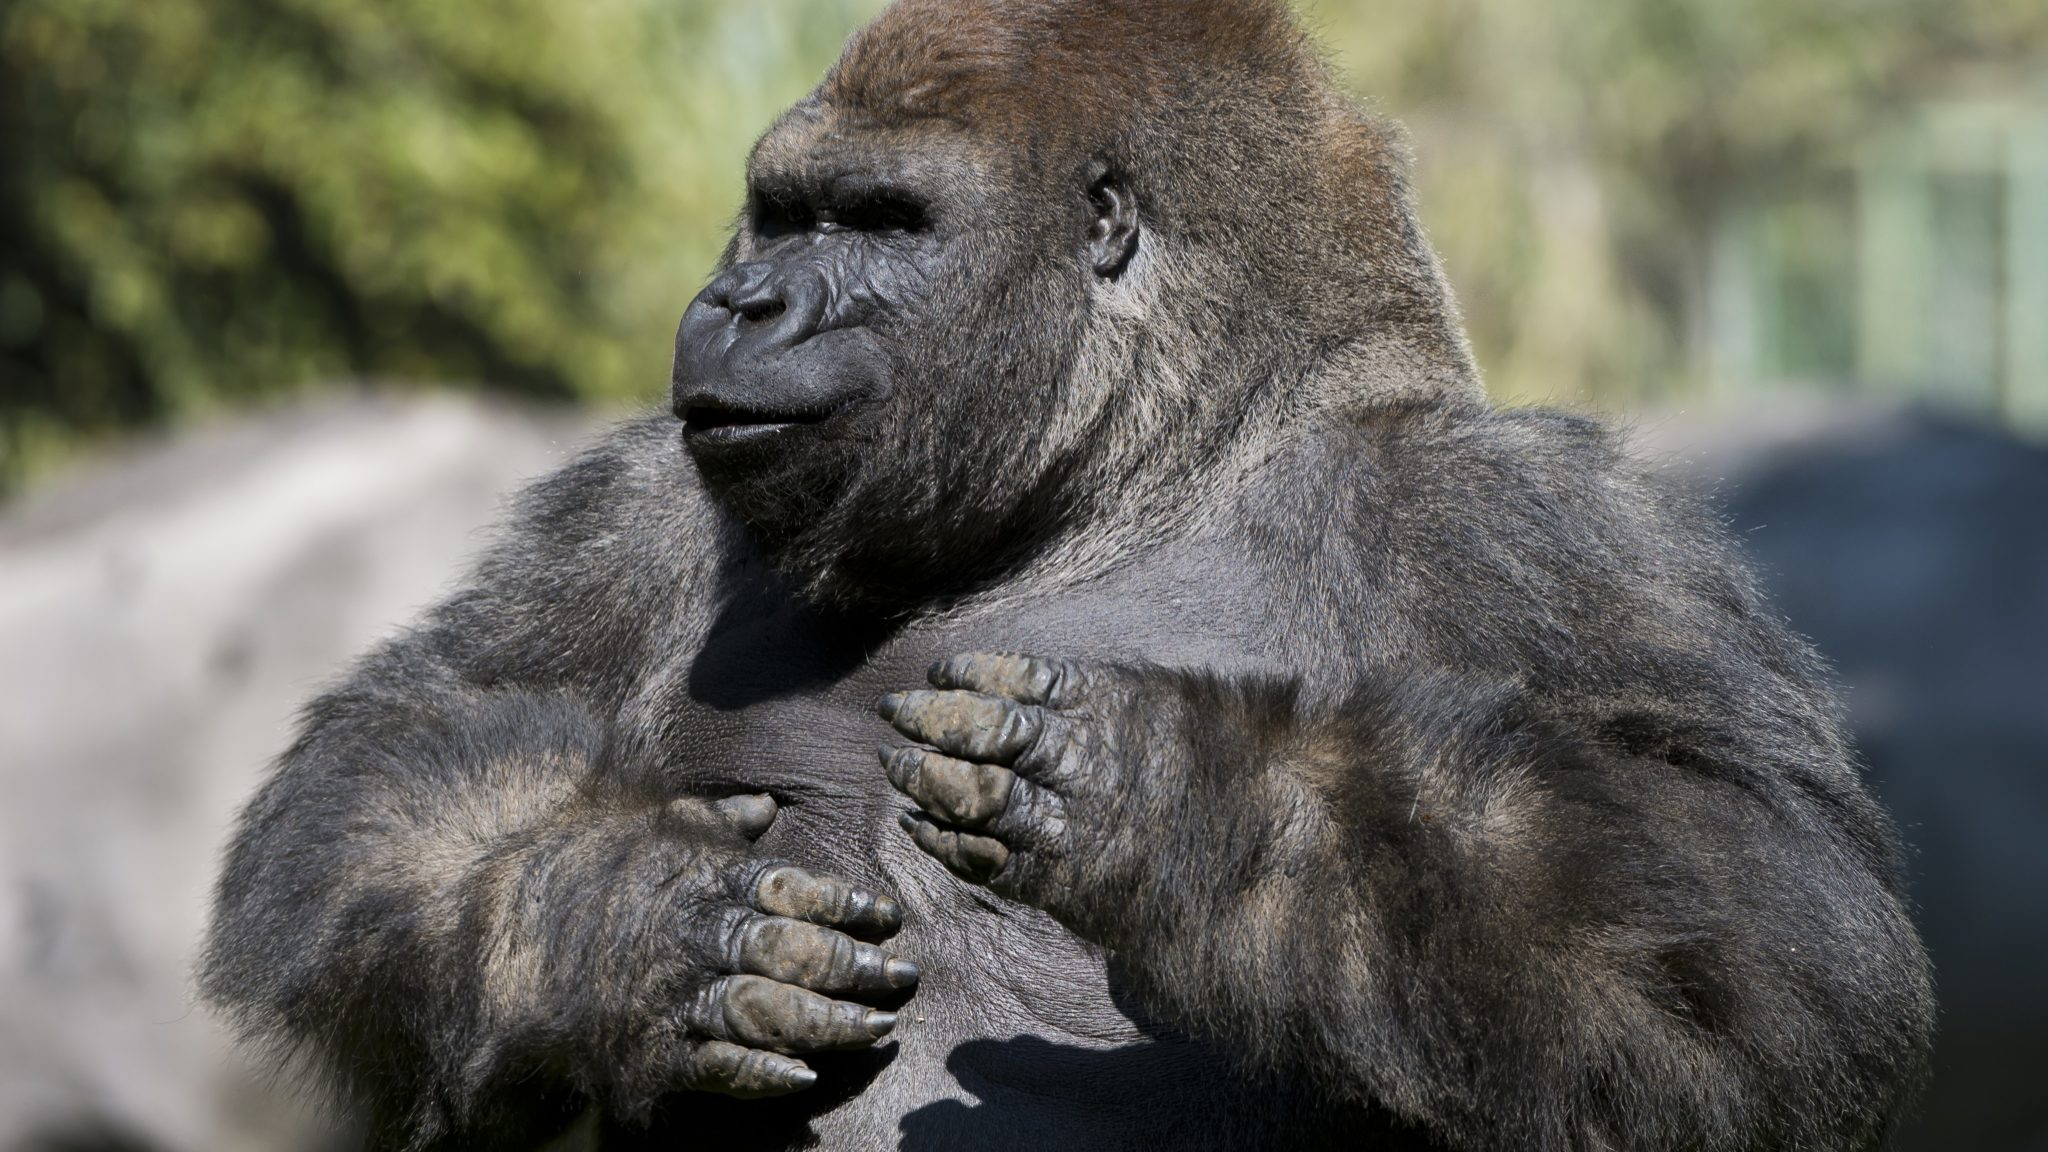 Gorilla, Mexico. Credit: OMAR TORRES/AFP/GETTY IMAGES